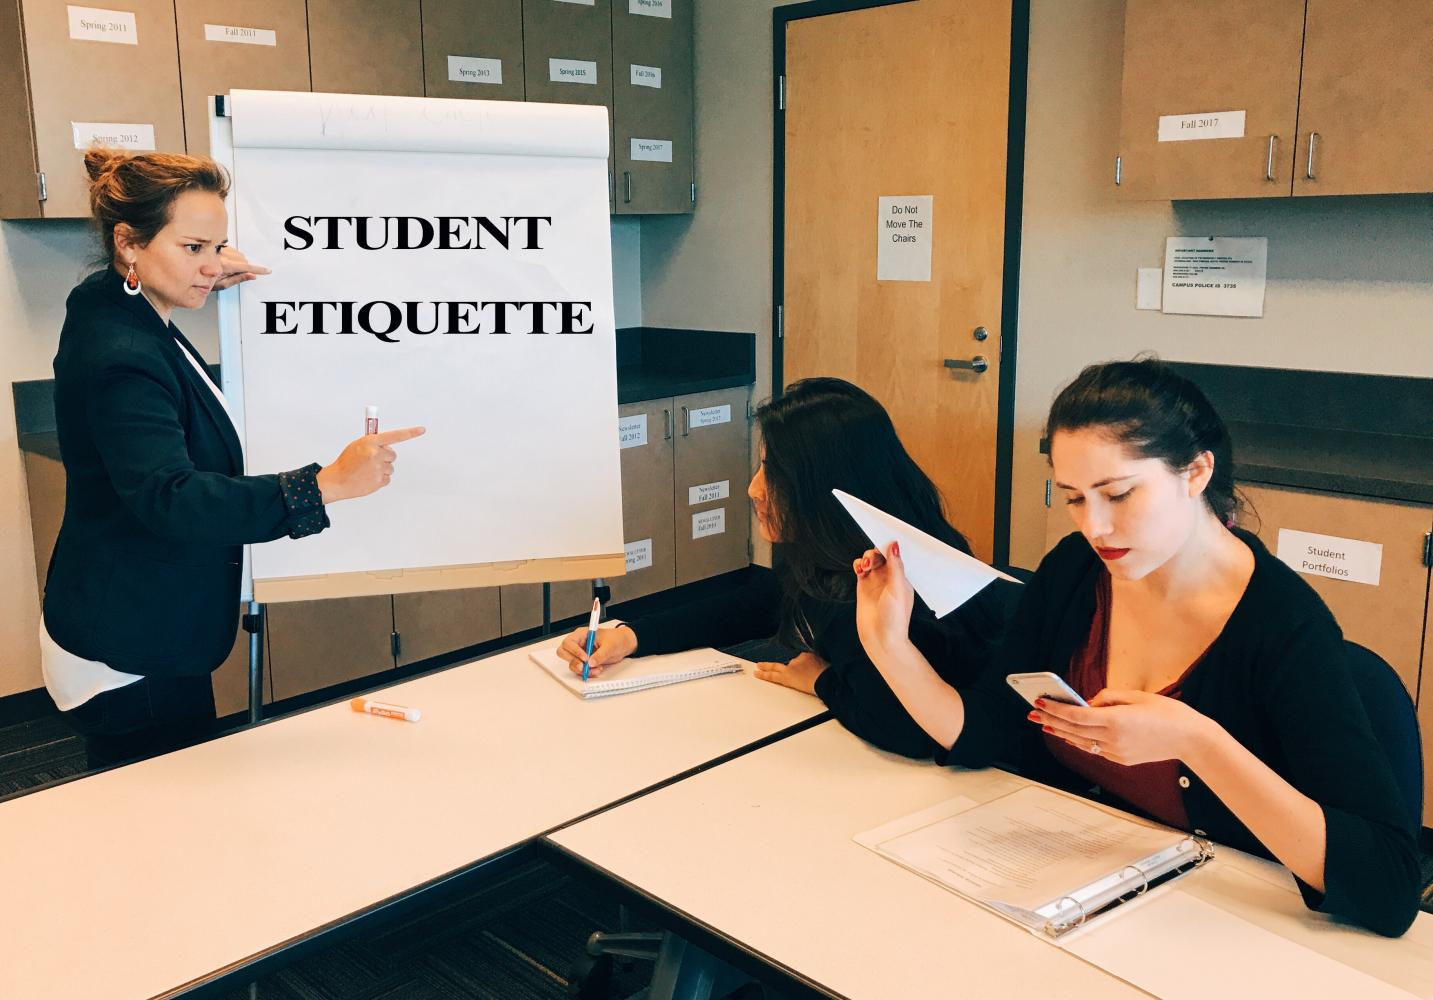 Etiquette is important in the classroom: texting is disrespectful for both the instructor and the classmates.